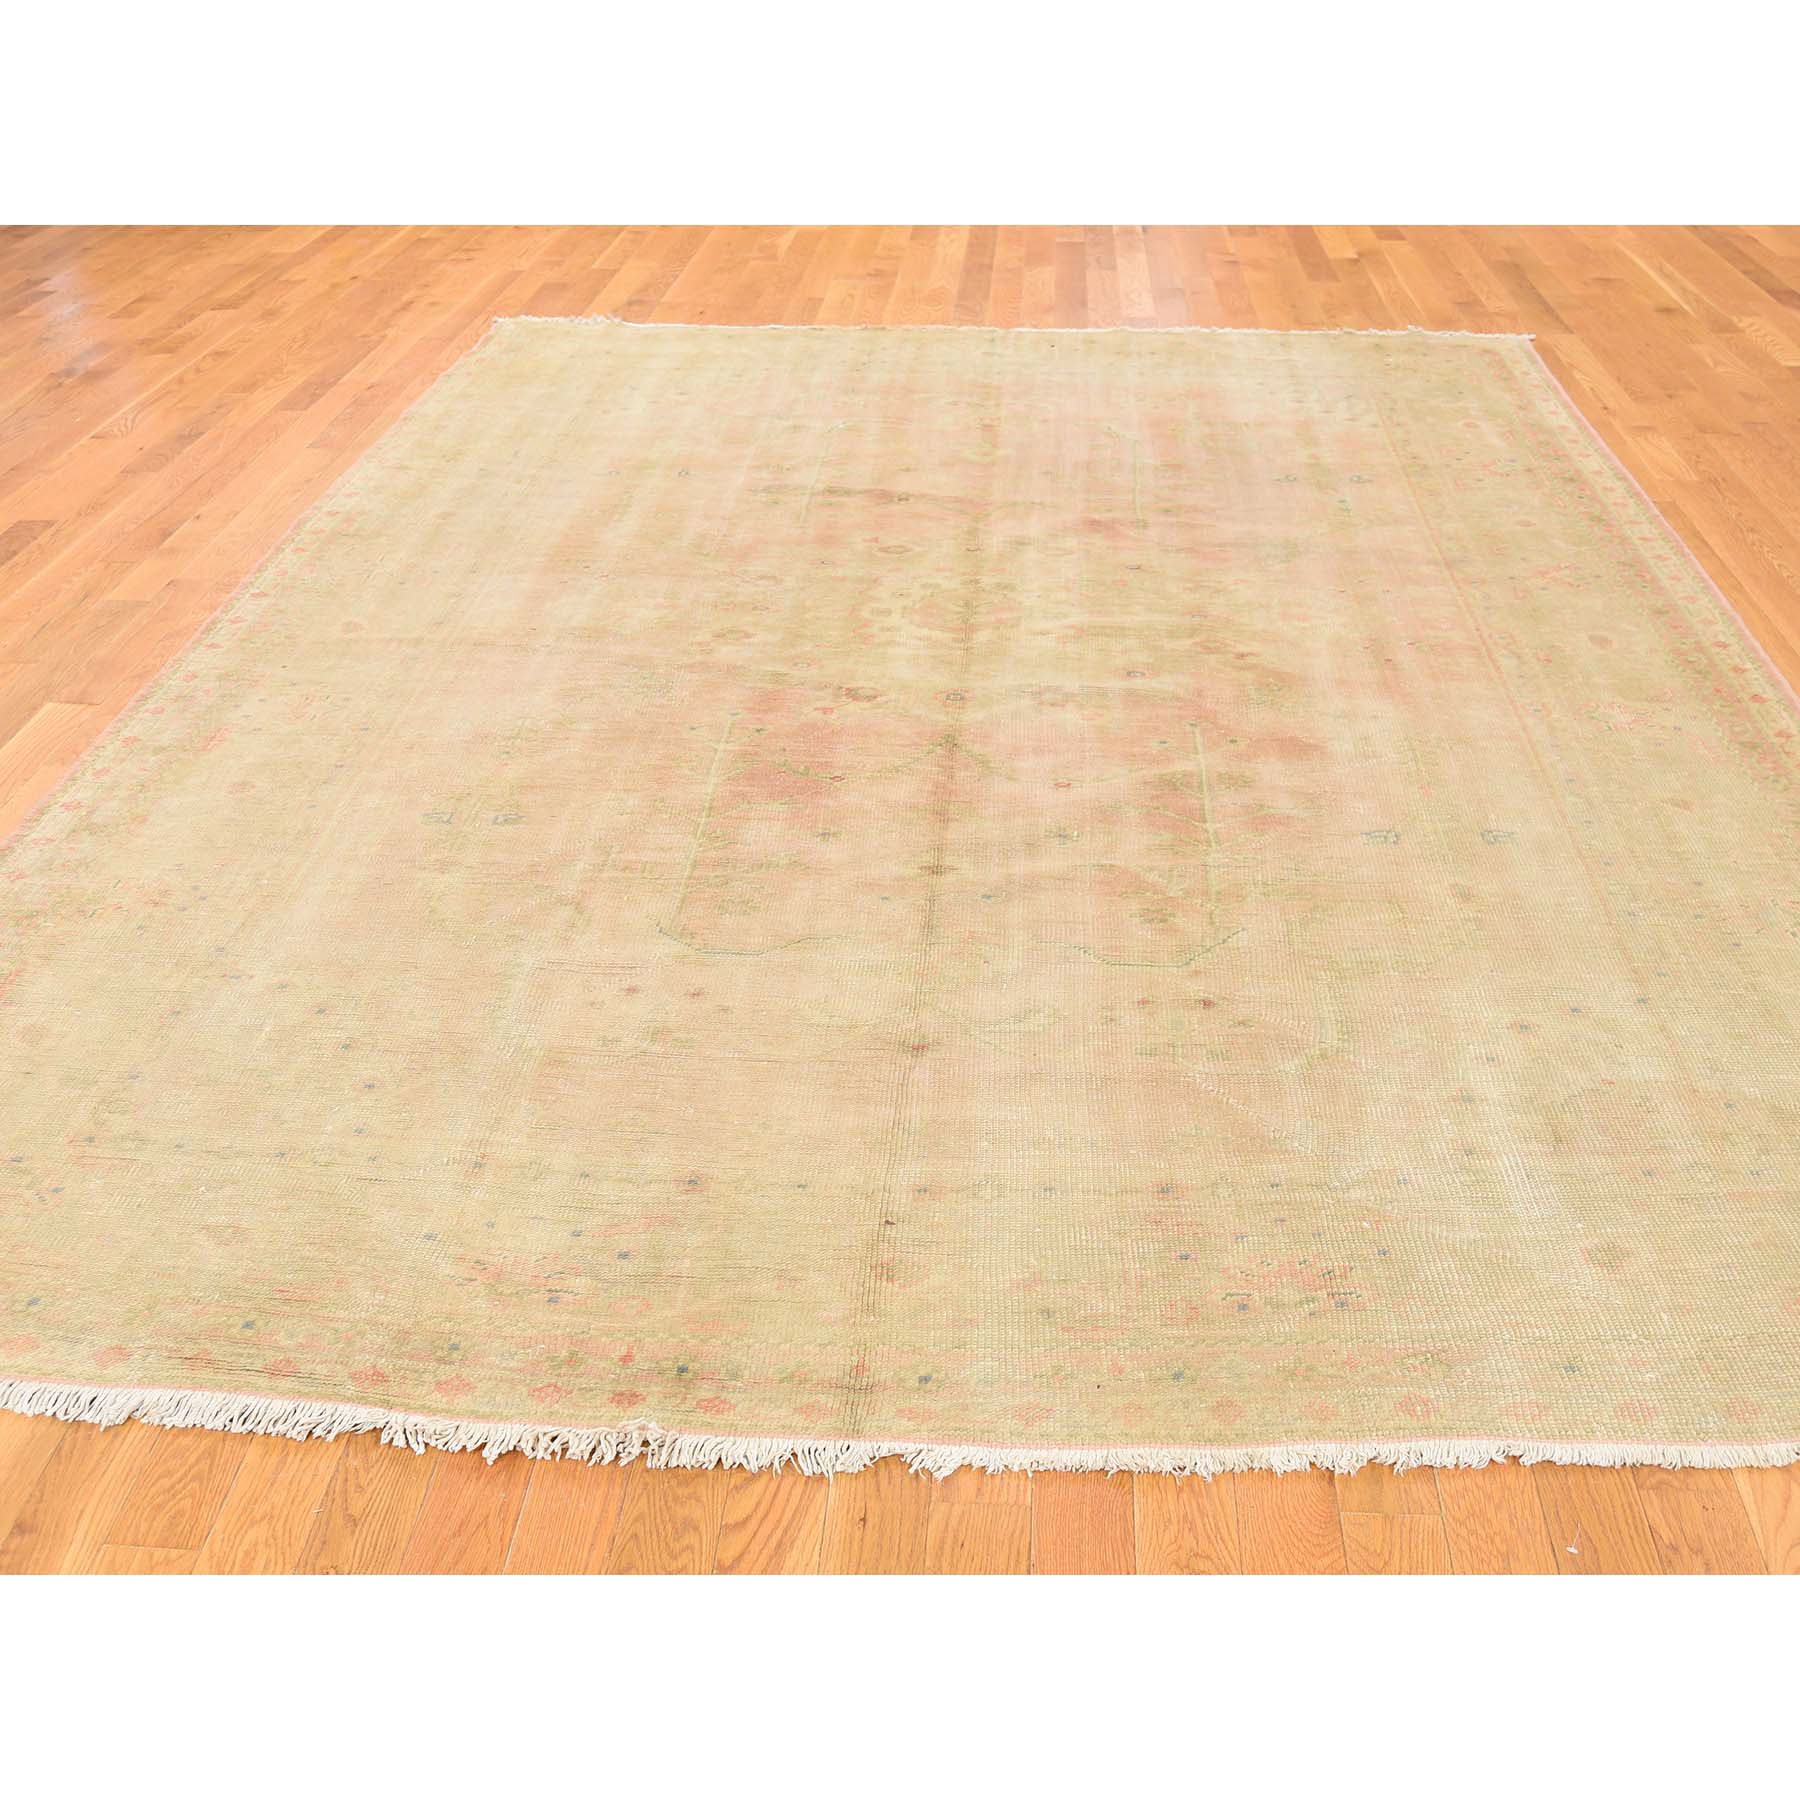 8'2''x11' Hand Woven Antique Turkish Oushak Mint Condition Oriental Rug